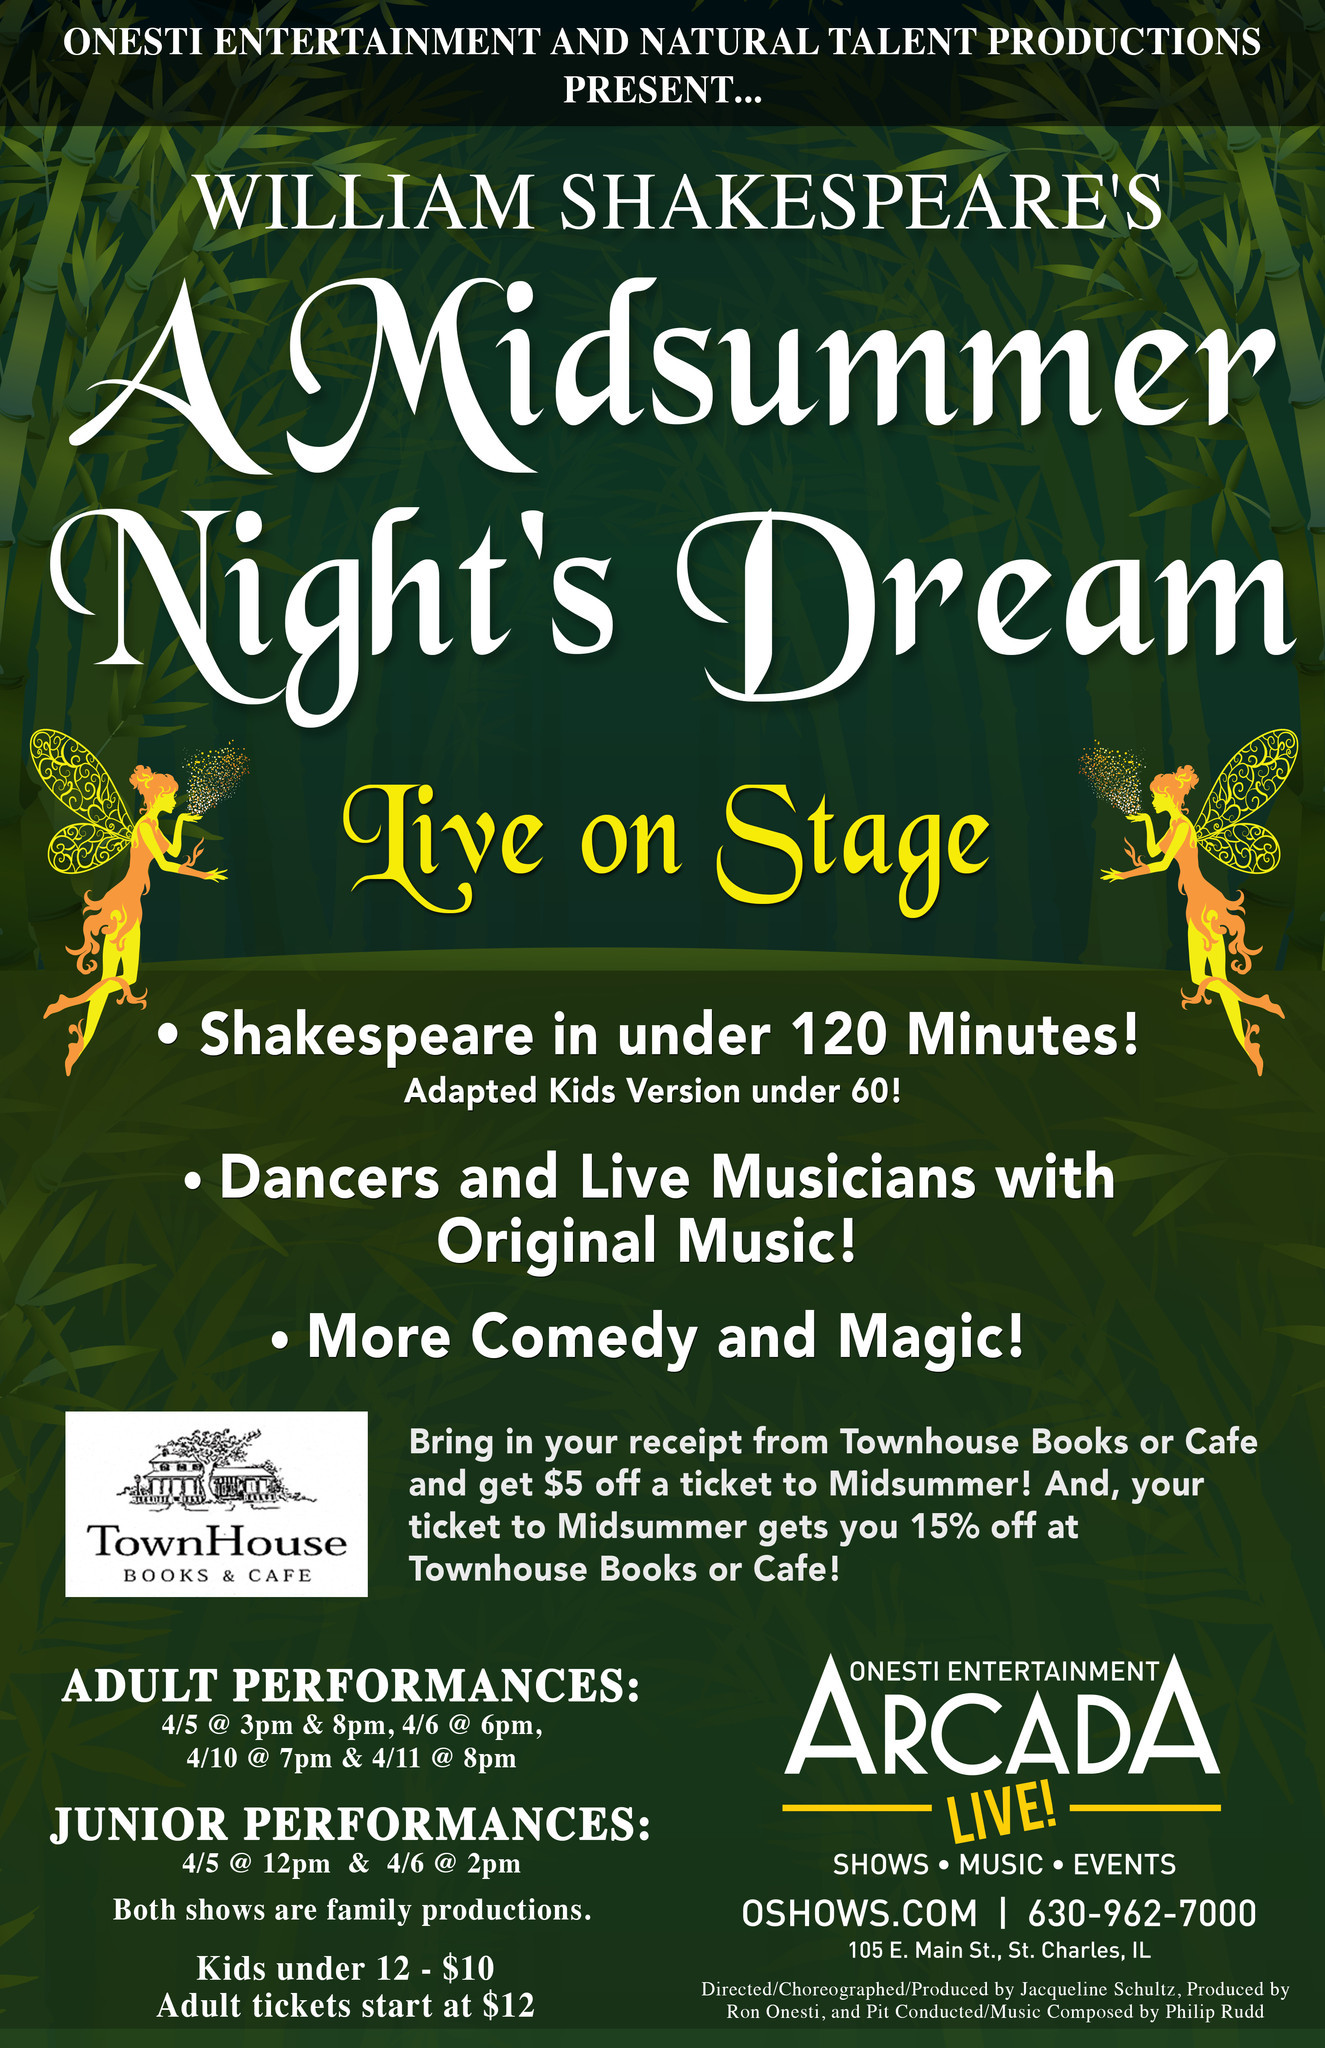 """SHAKESPEARE'S """"A MIDSUMMER NIGHT'S DREAM"""" ADDS COMEDIC ..."""